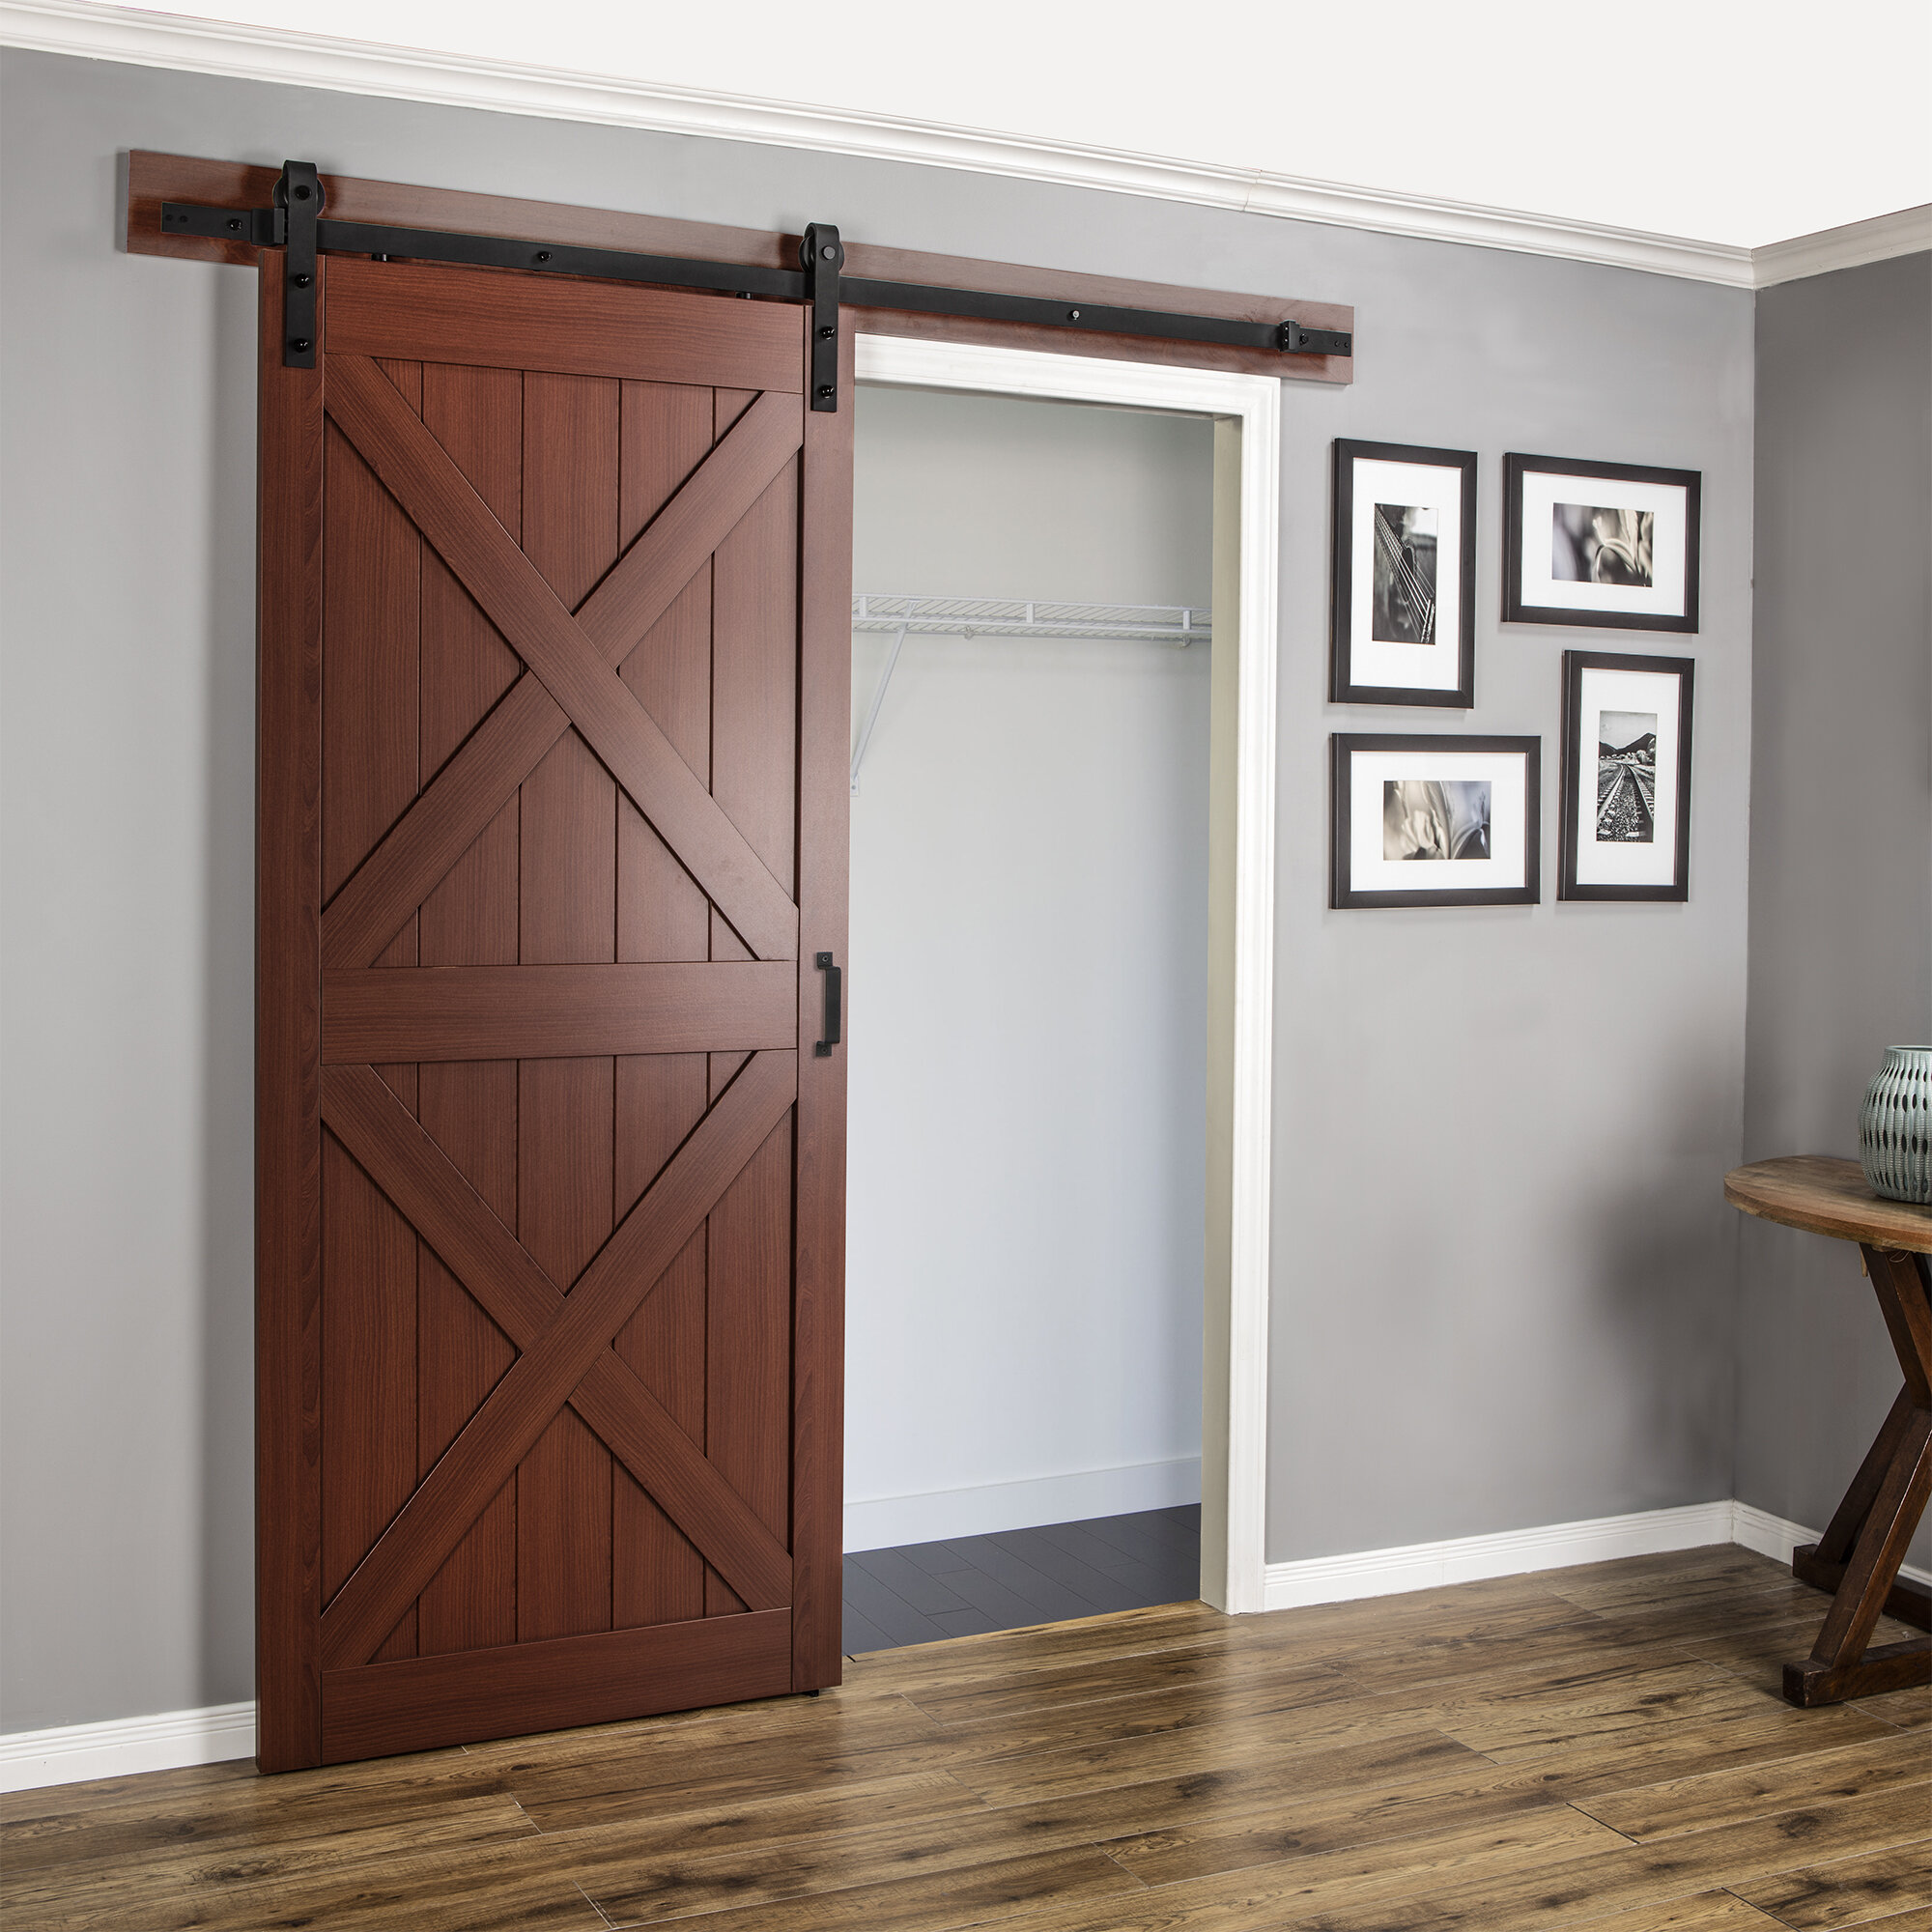 sliding door lovely of being design barn tactical minimalist doors inspirational interior